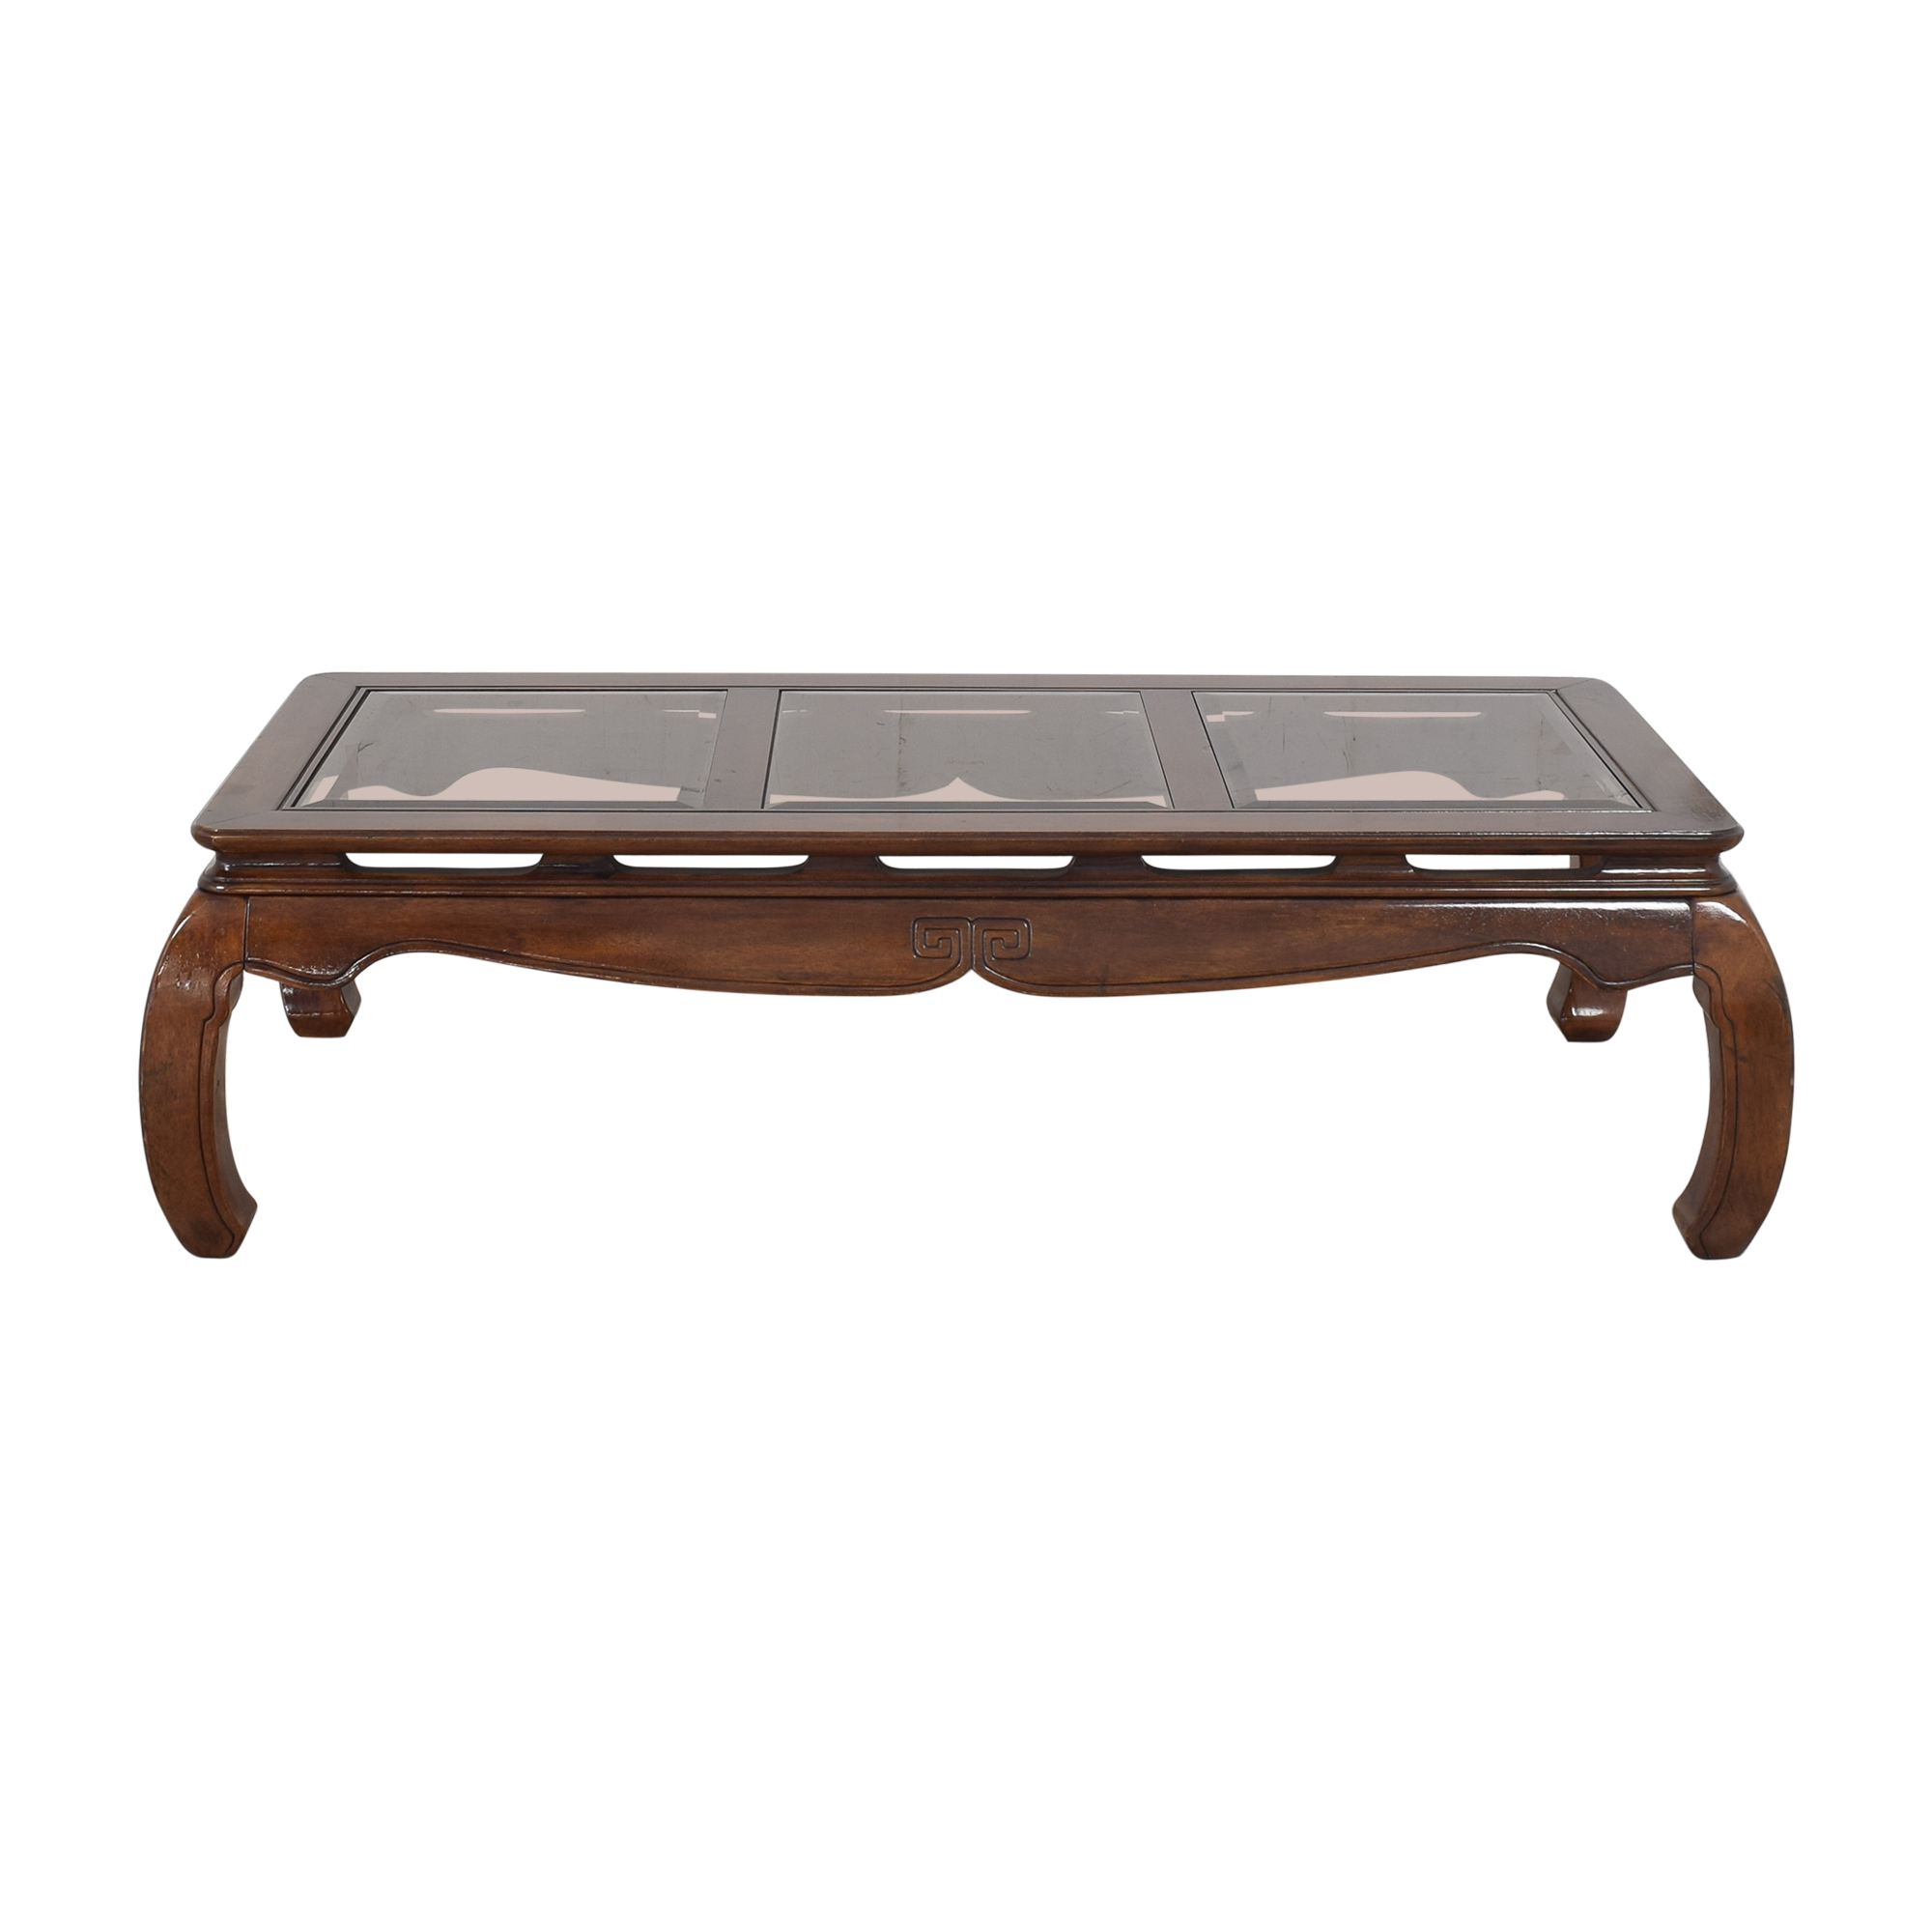 Panel Top Coffee Table / Coffee Tables